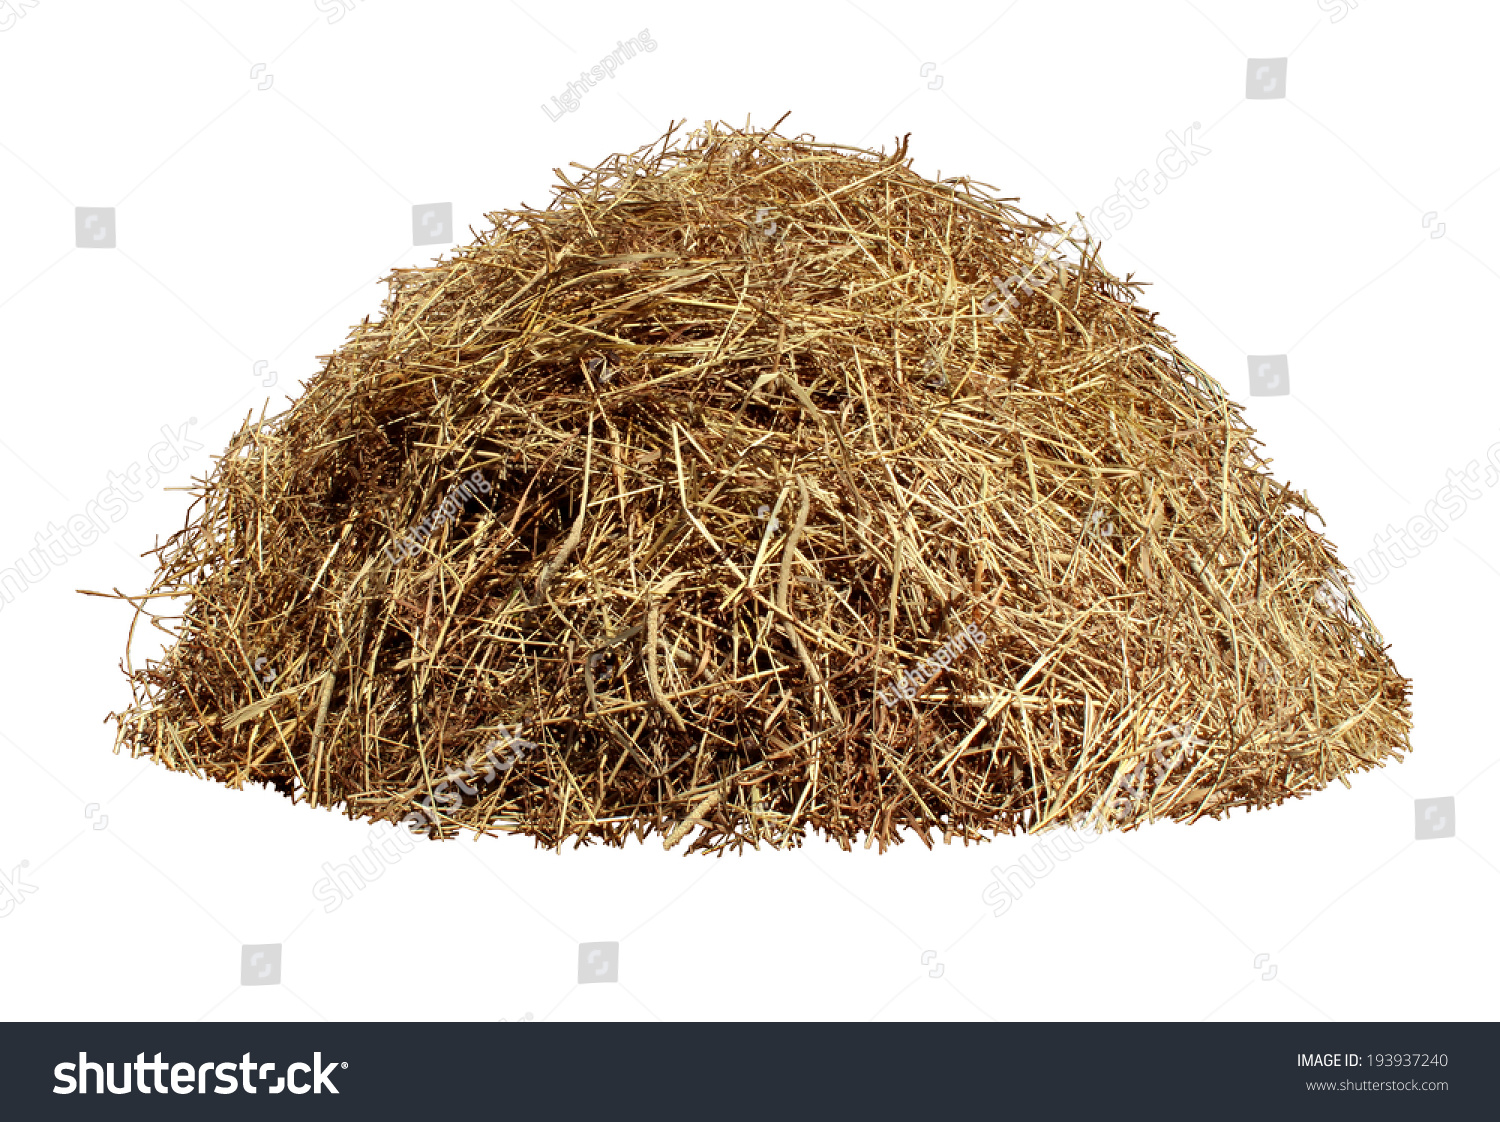 Hay pile isolated on a white background as an agriculture farm and farming symbol of harvest time with dried grass straw as a mountain of dried grass haystack.